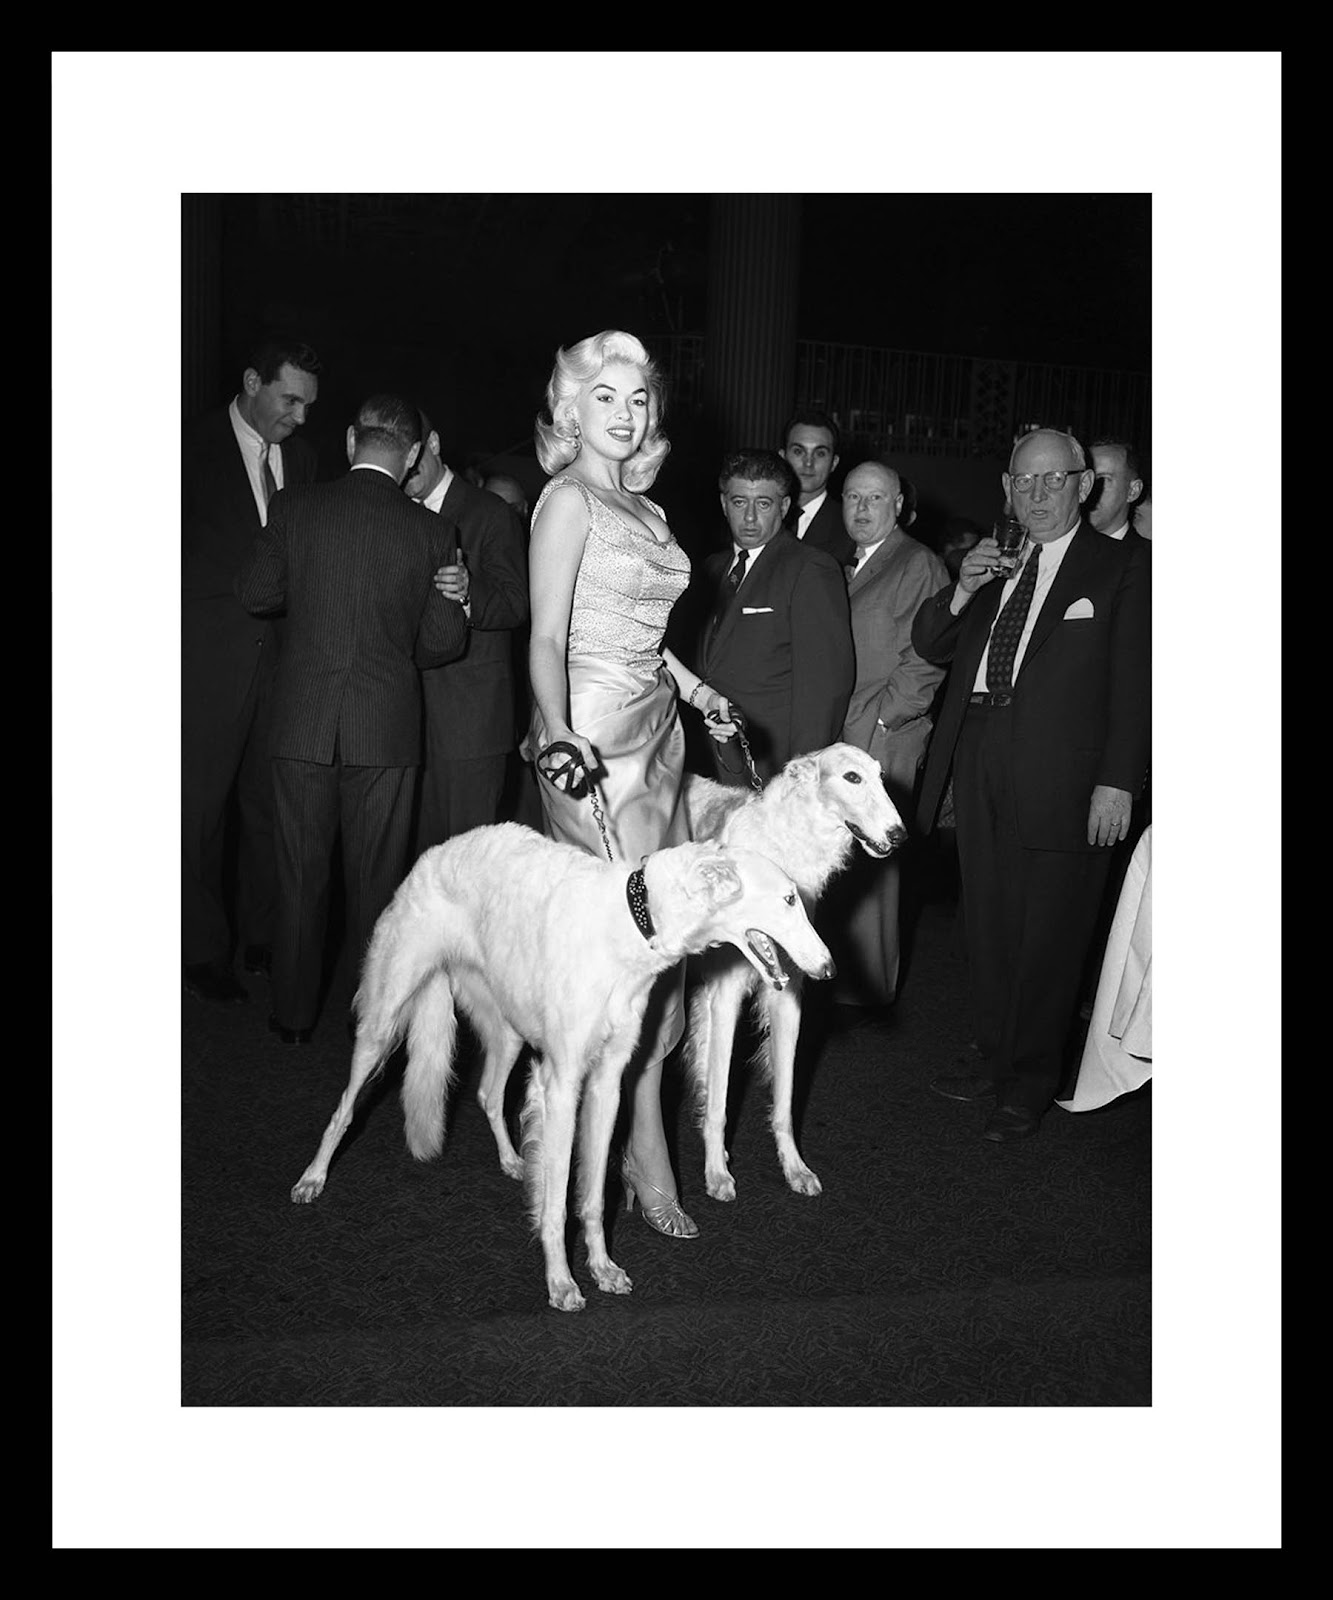 bk0009_-_jayne_mansfield_with_seagrams_dogs_resized.jpeg